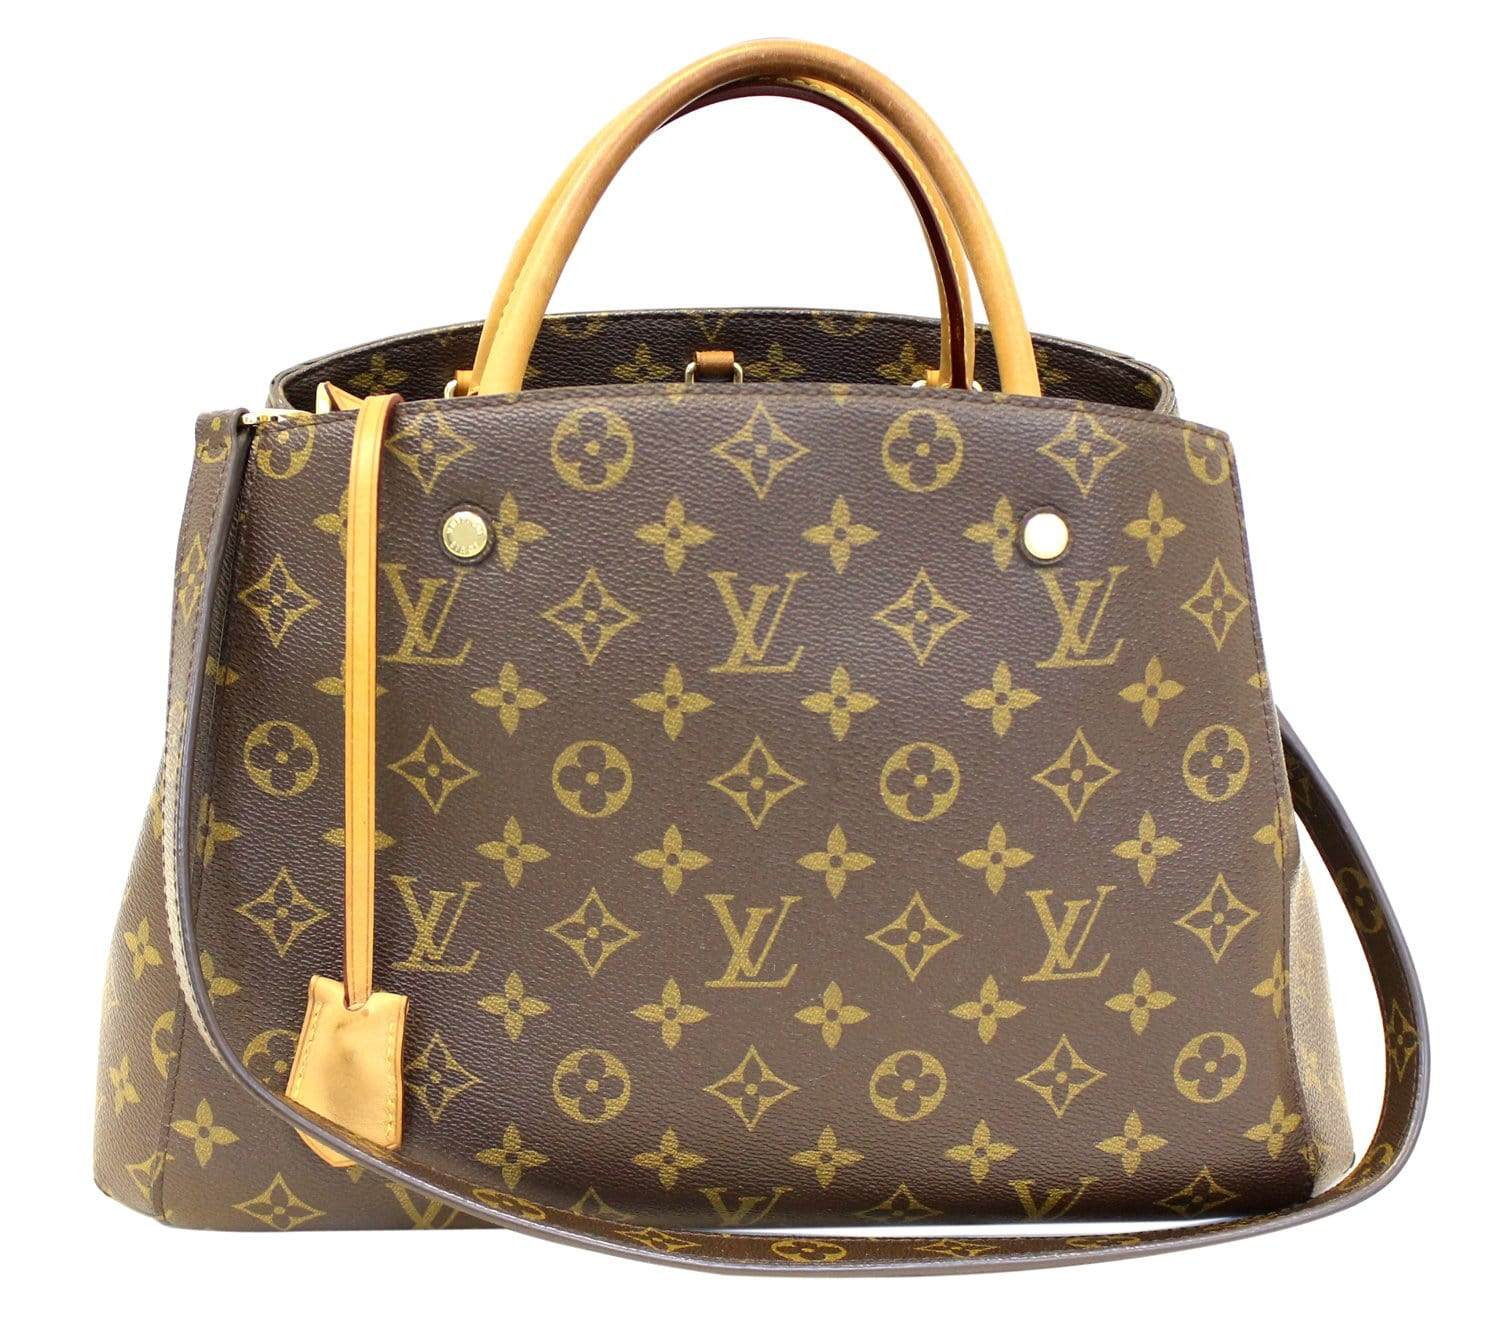 e85da169b3598 LOUIS VUITTON Monogram Canvas Montaigne MM Shoulder Bag